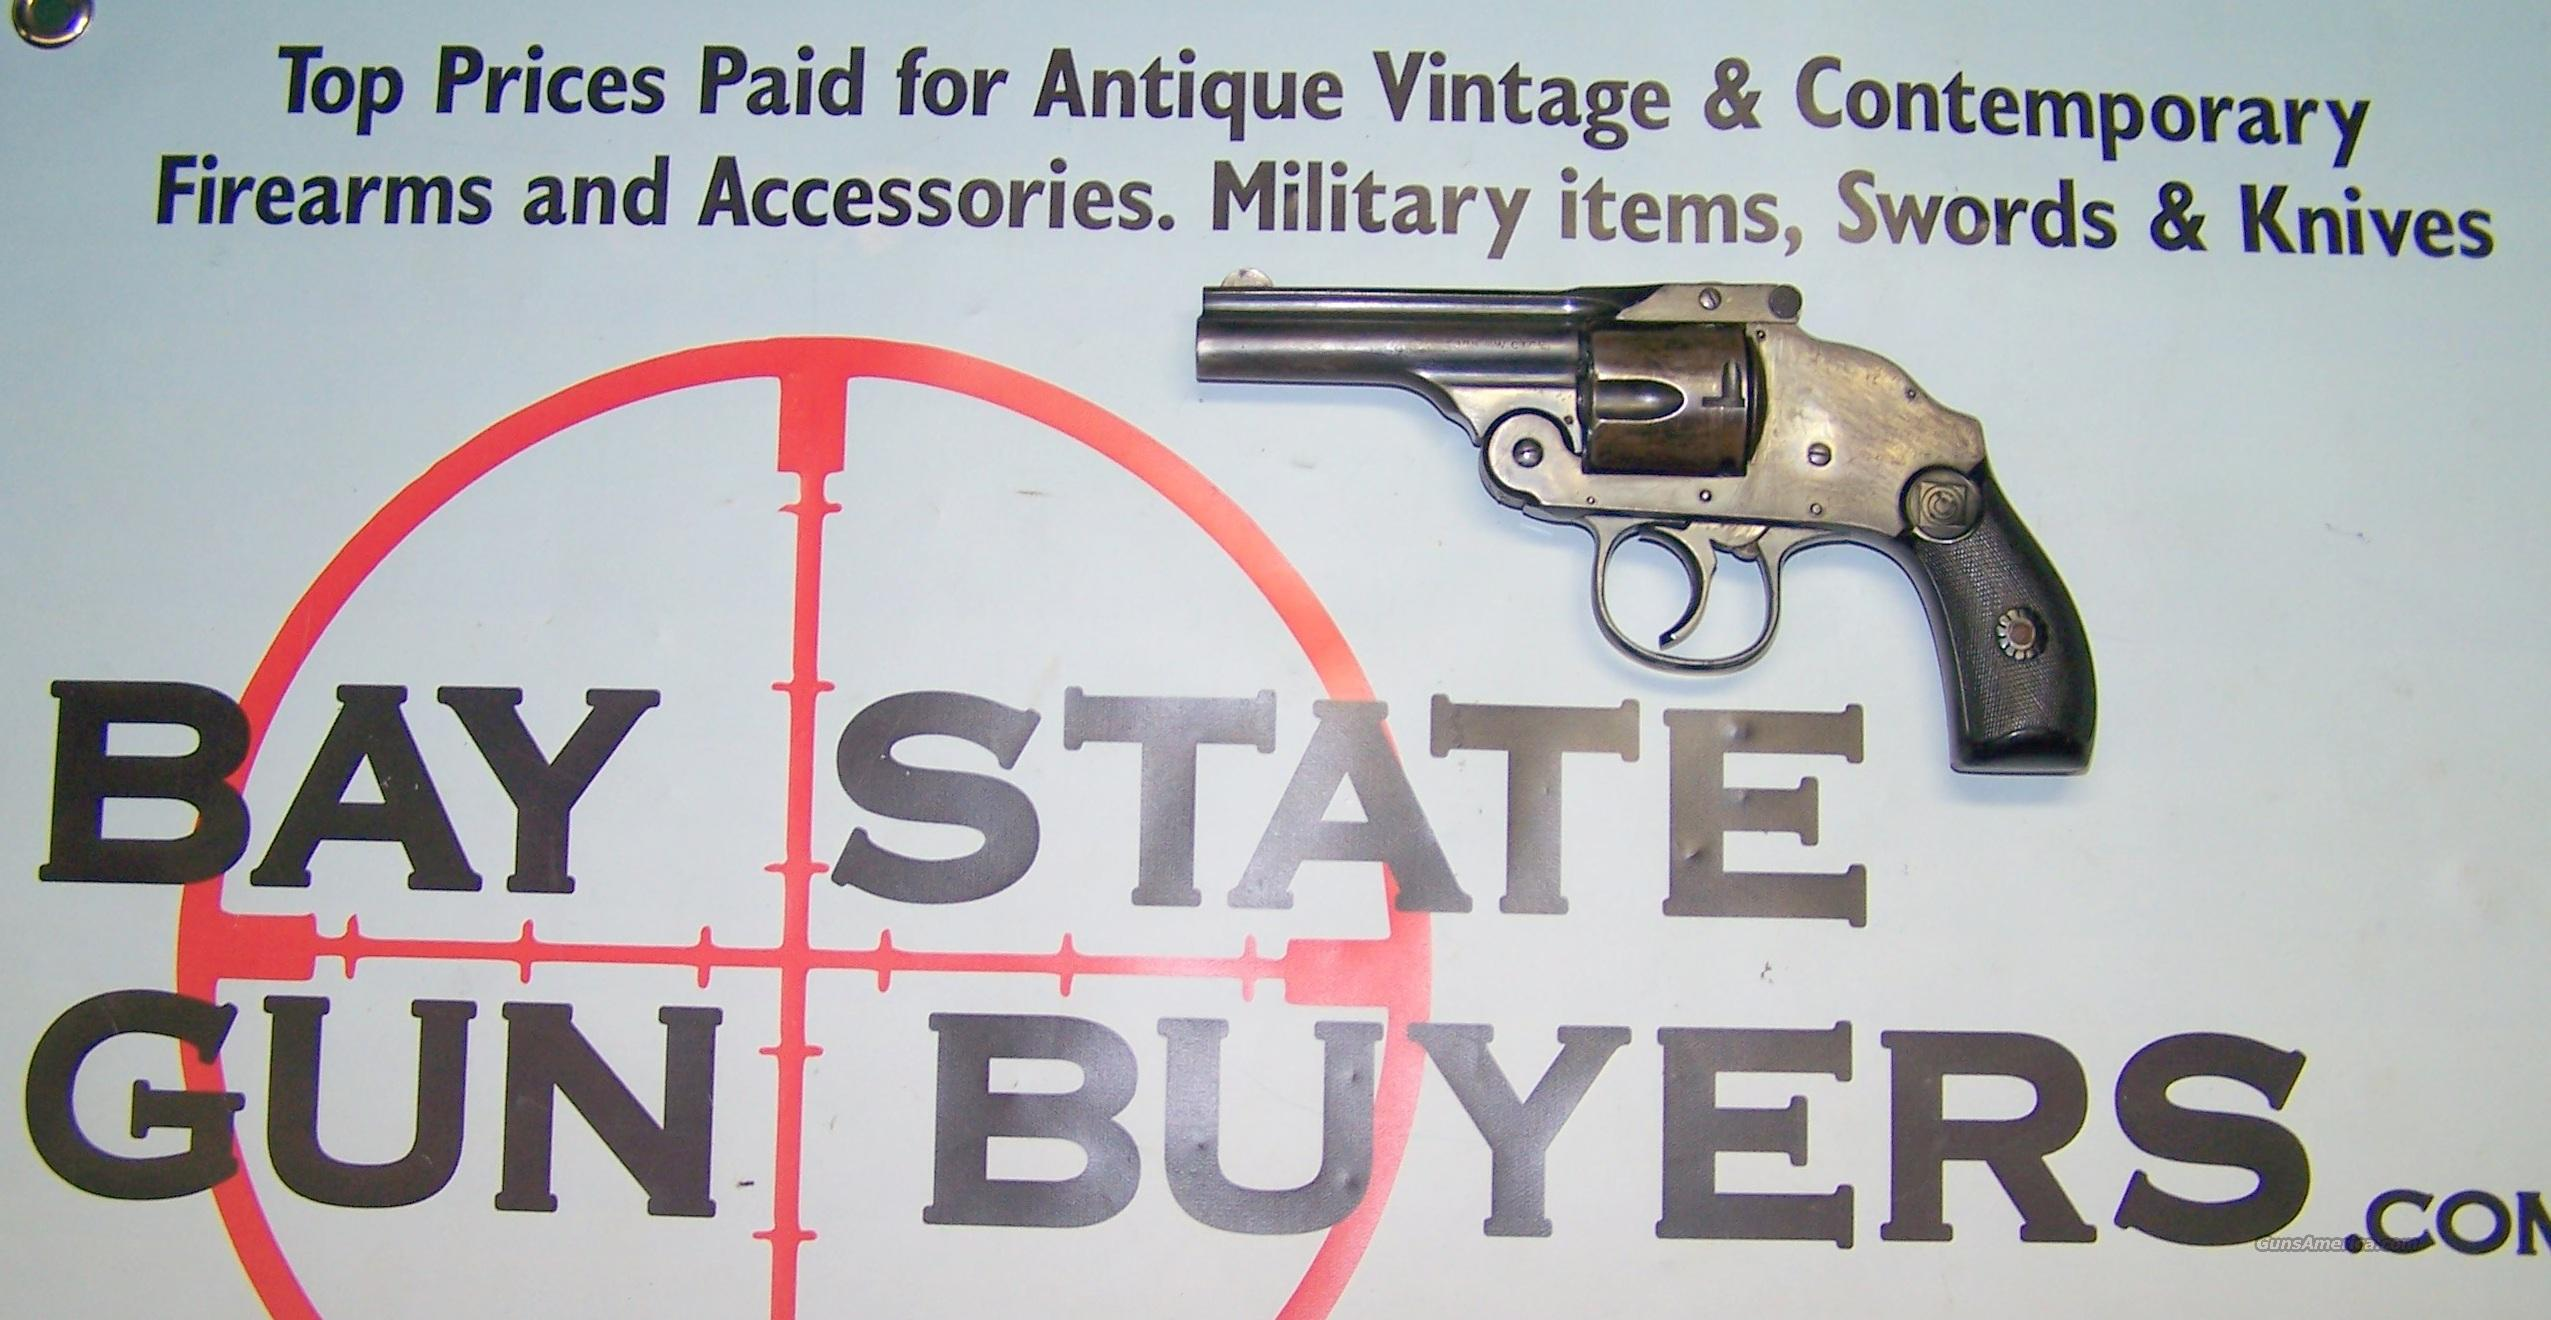 H&R Top Break Revolver .38 S&W HAMMERLESS Harrington Richardson  Guns > Pistols > Harrington & Richardson Pistols